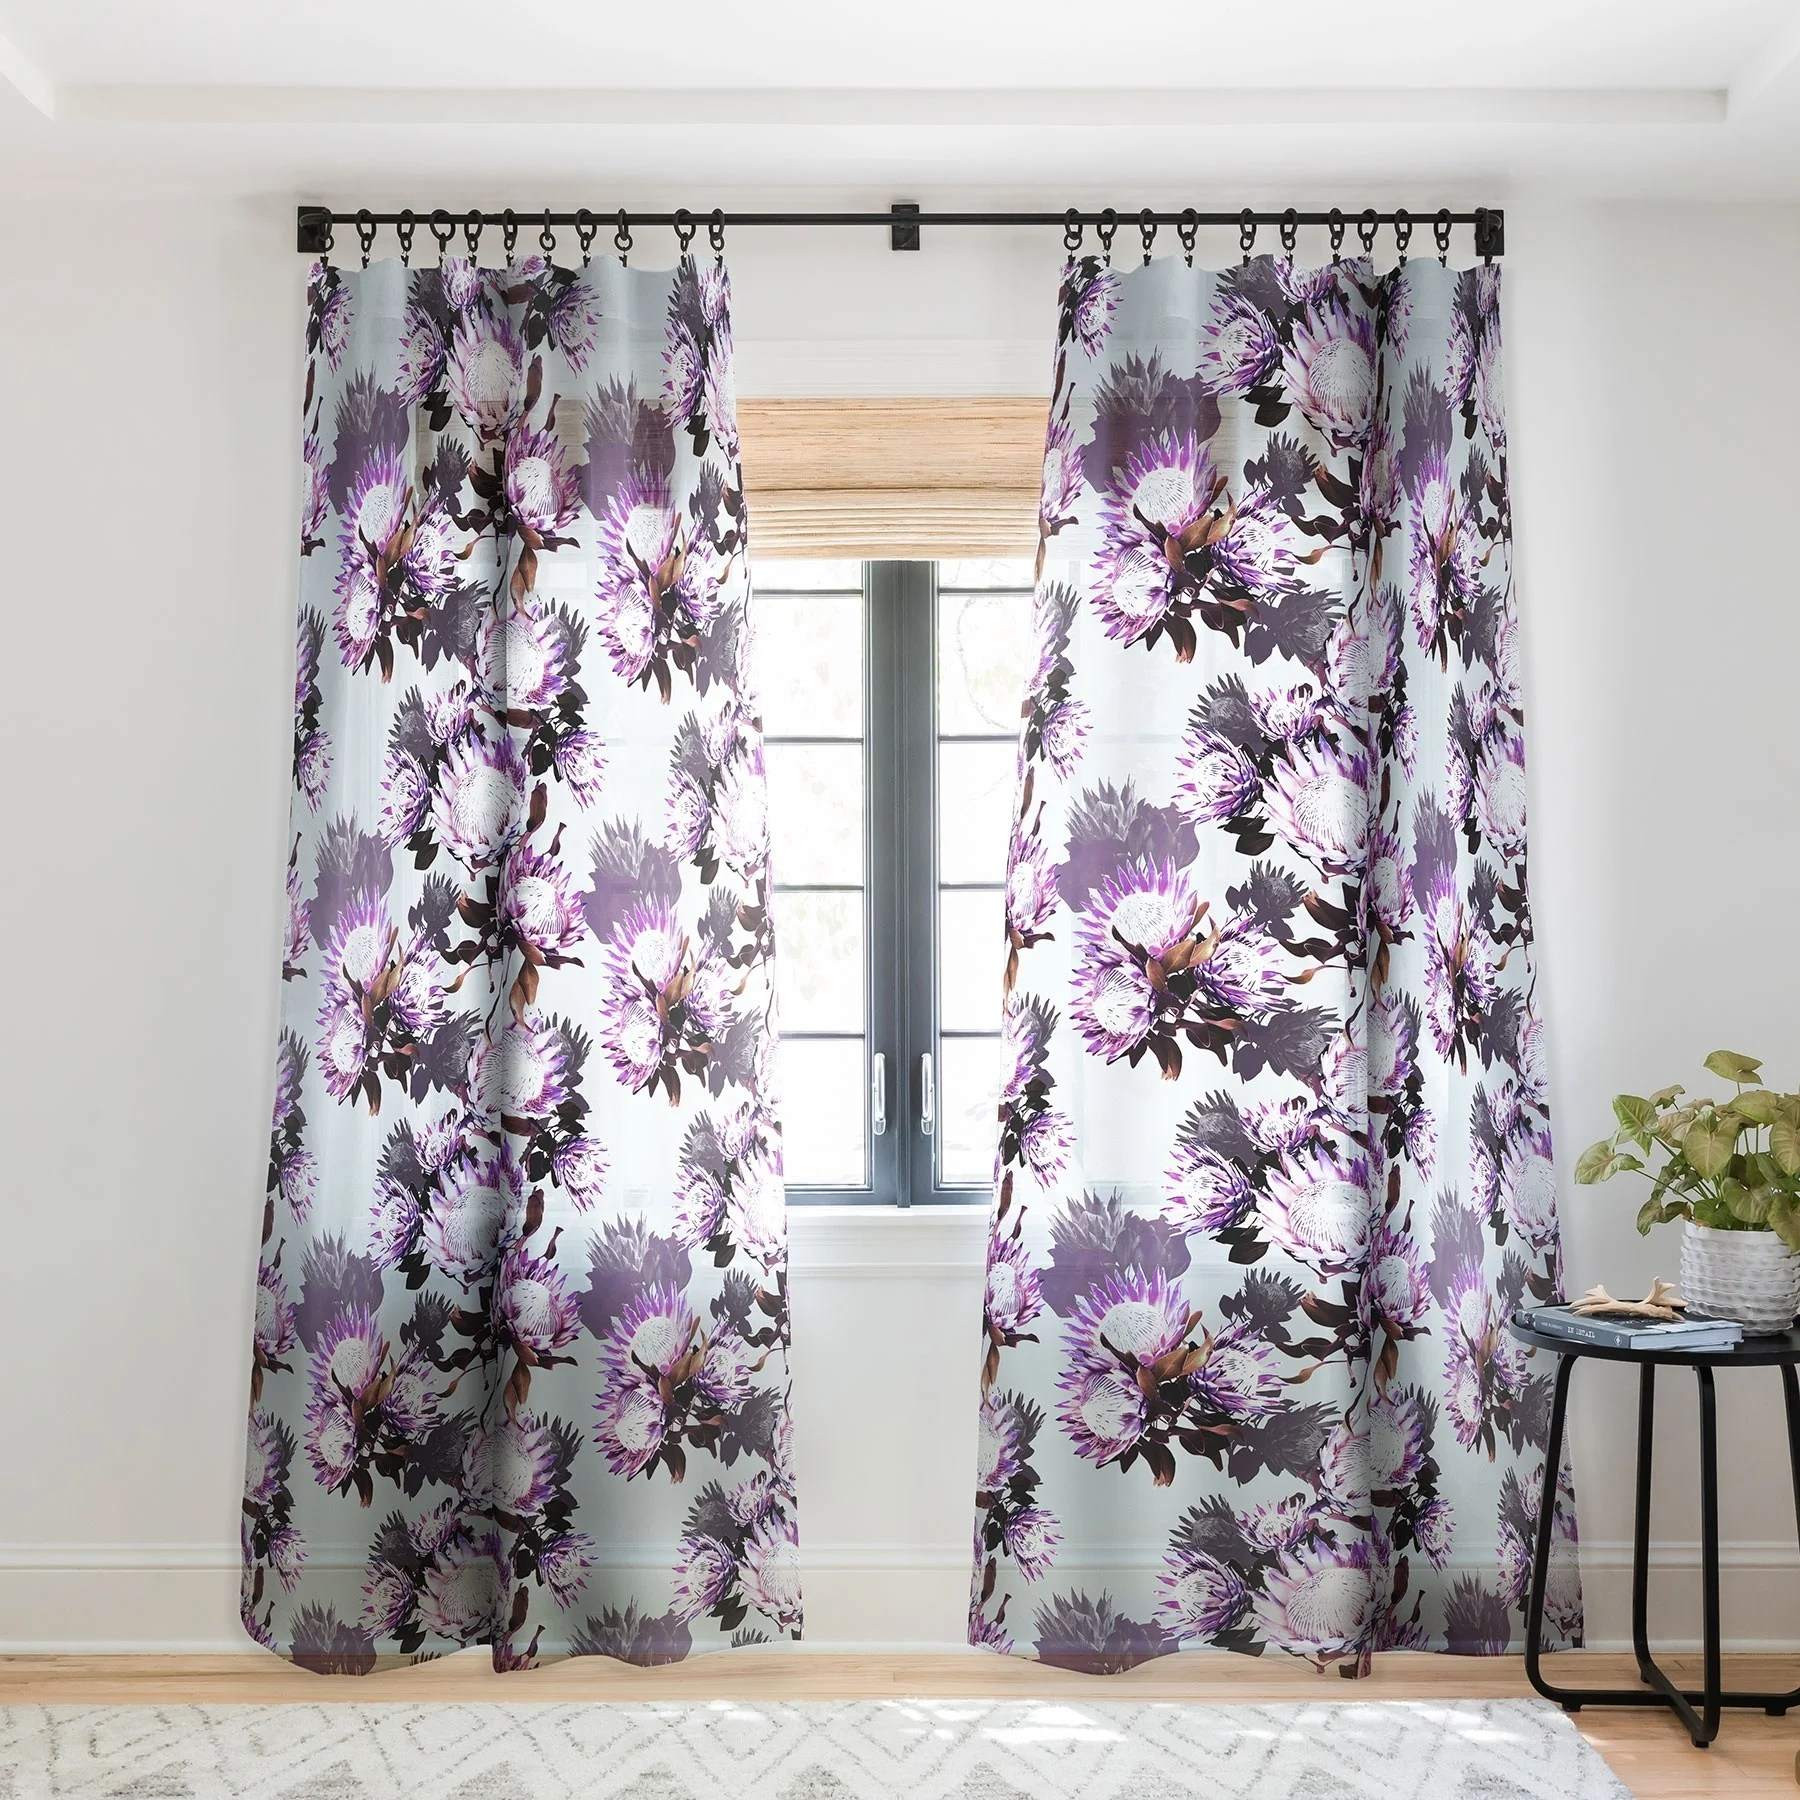 Lavender Sheer Curtains Marta Barragan Camarasa Purple Protea Floral Pattern Single Panel Sheer Curtain 50 X 84